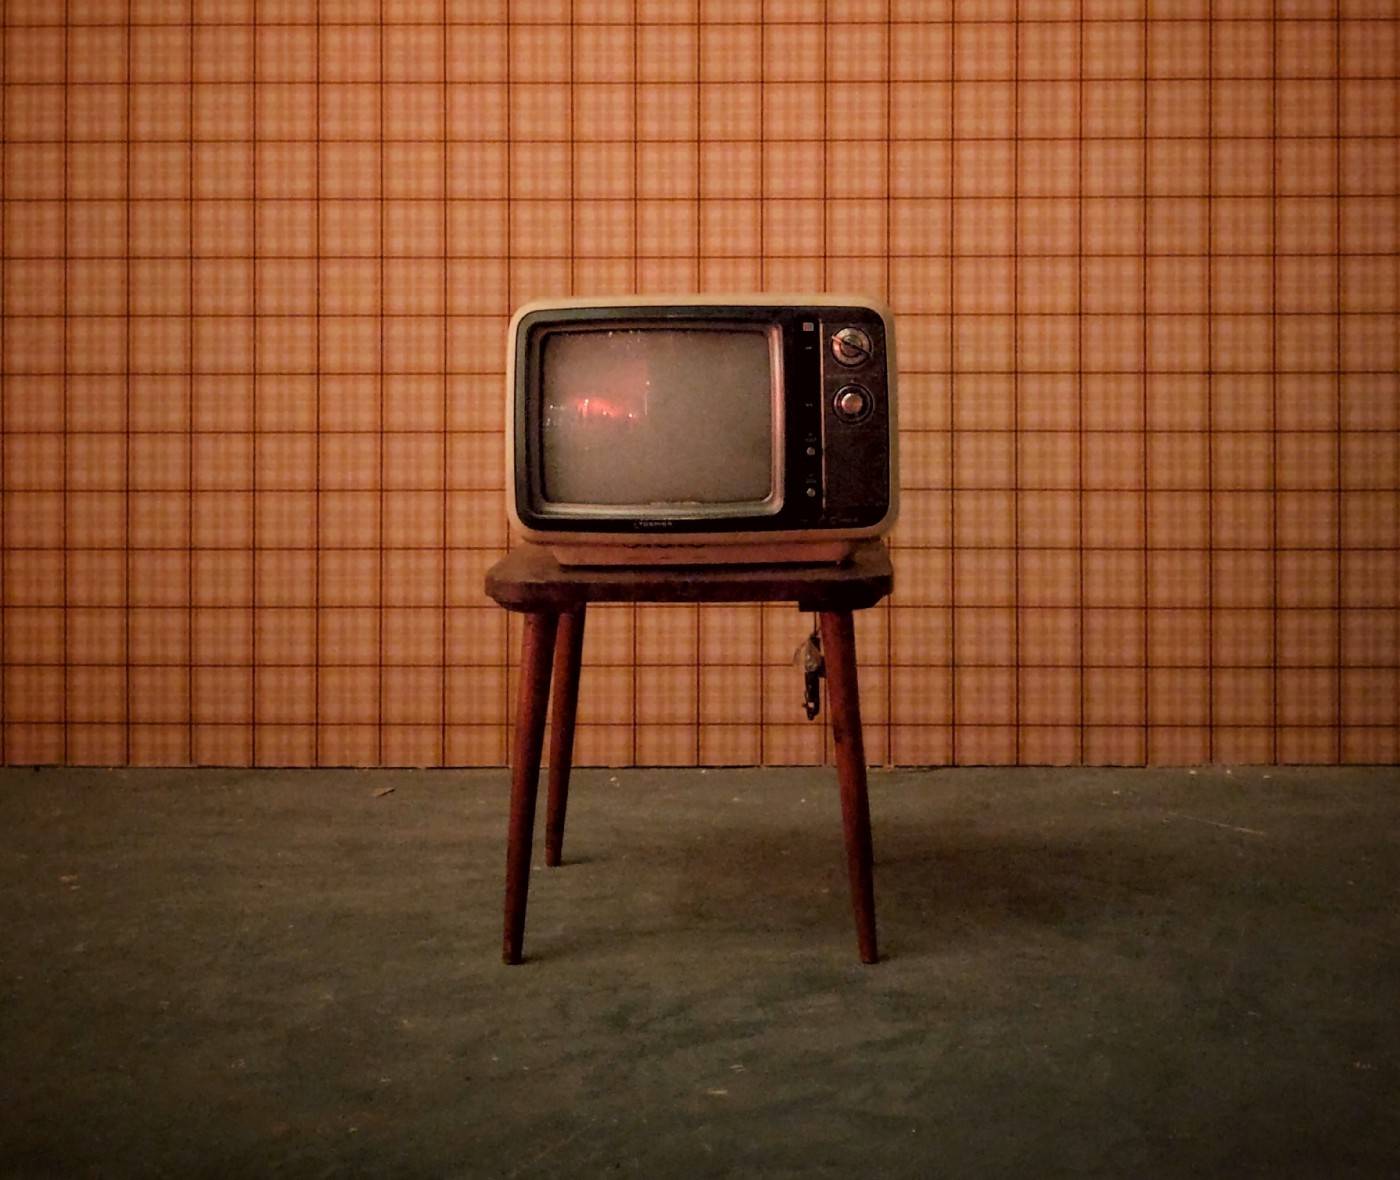 This is an old TV that we stick to when we don't like change